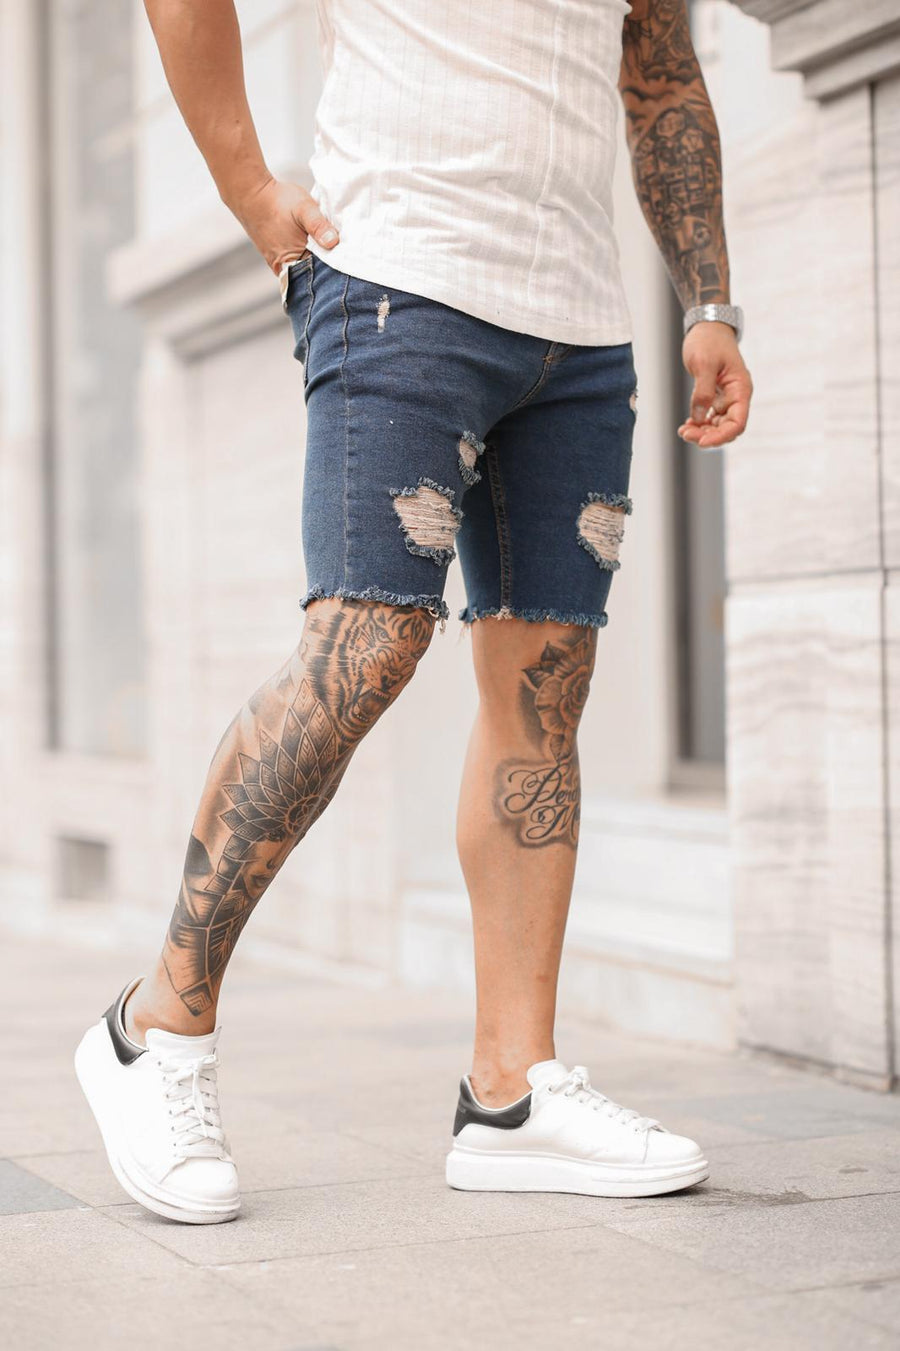 Sneakerjeans Navy Ripped Jeans Short DP34